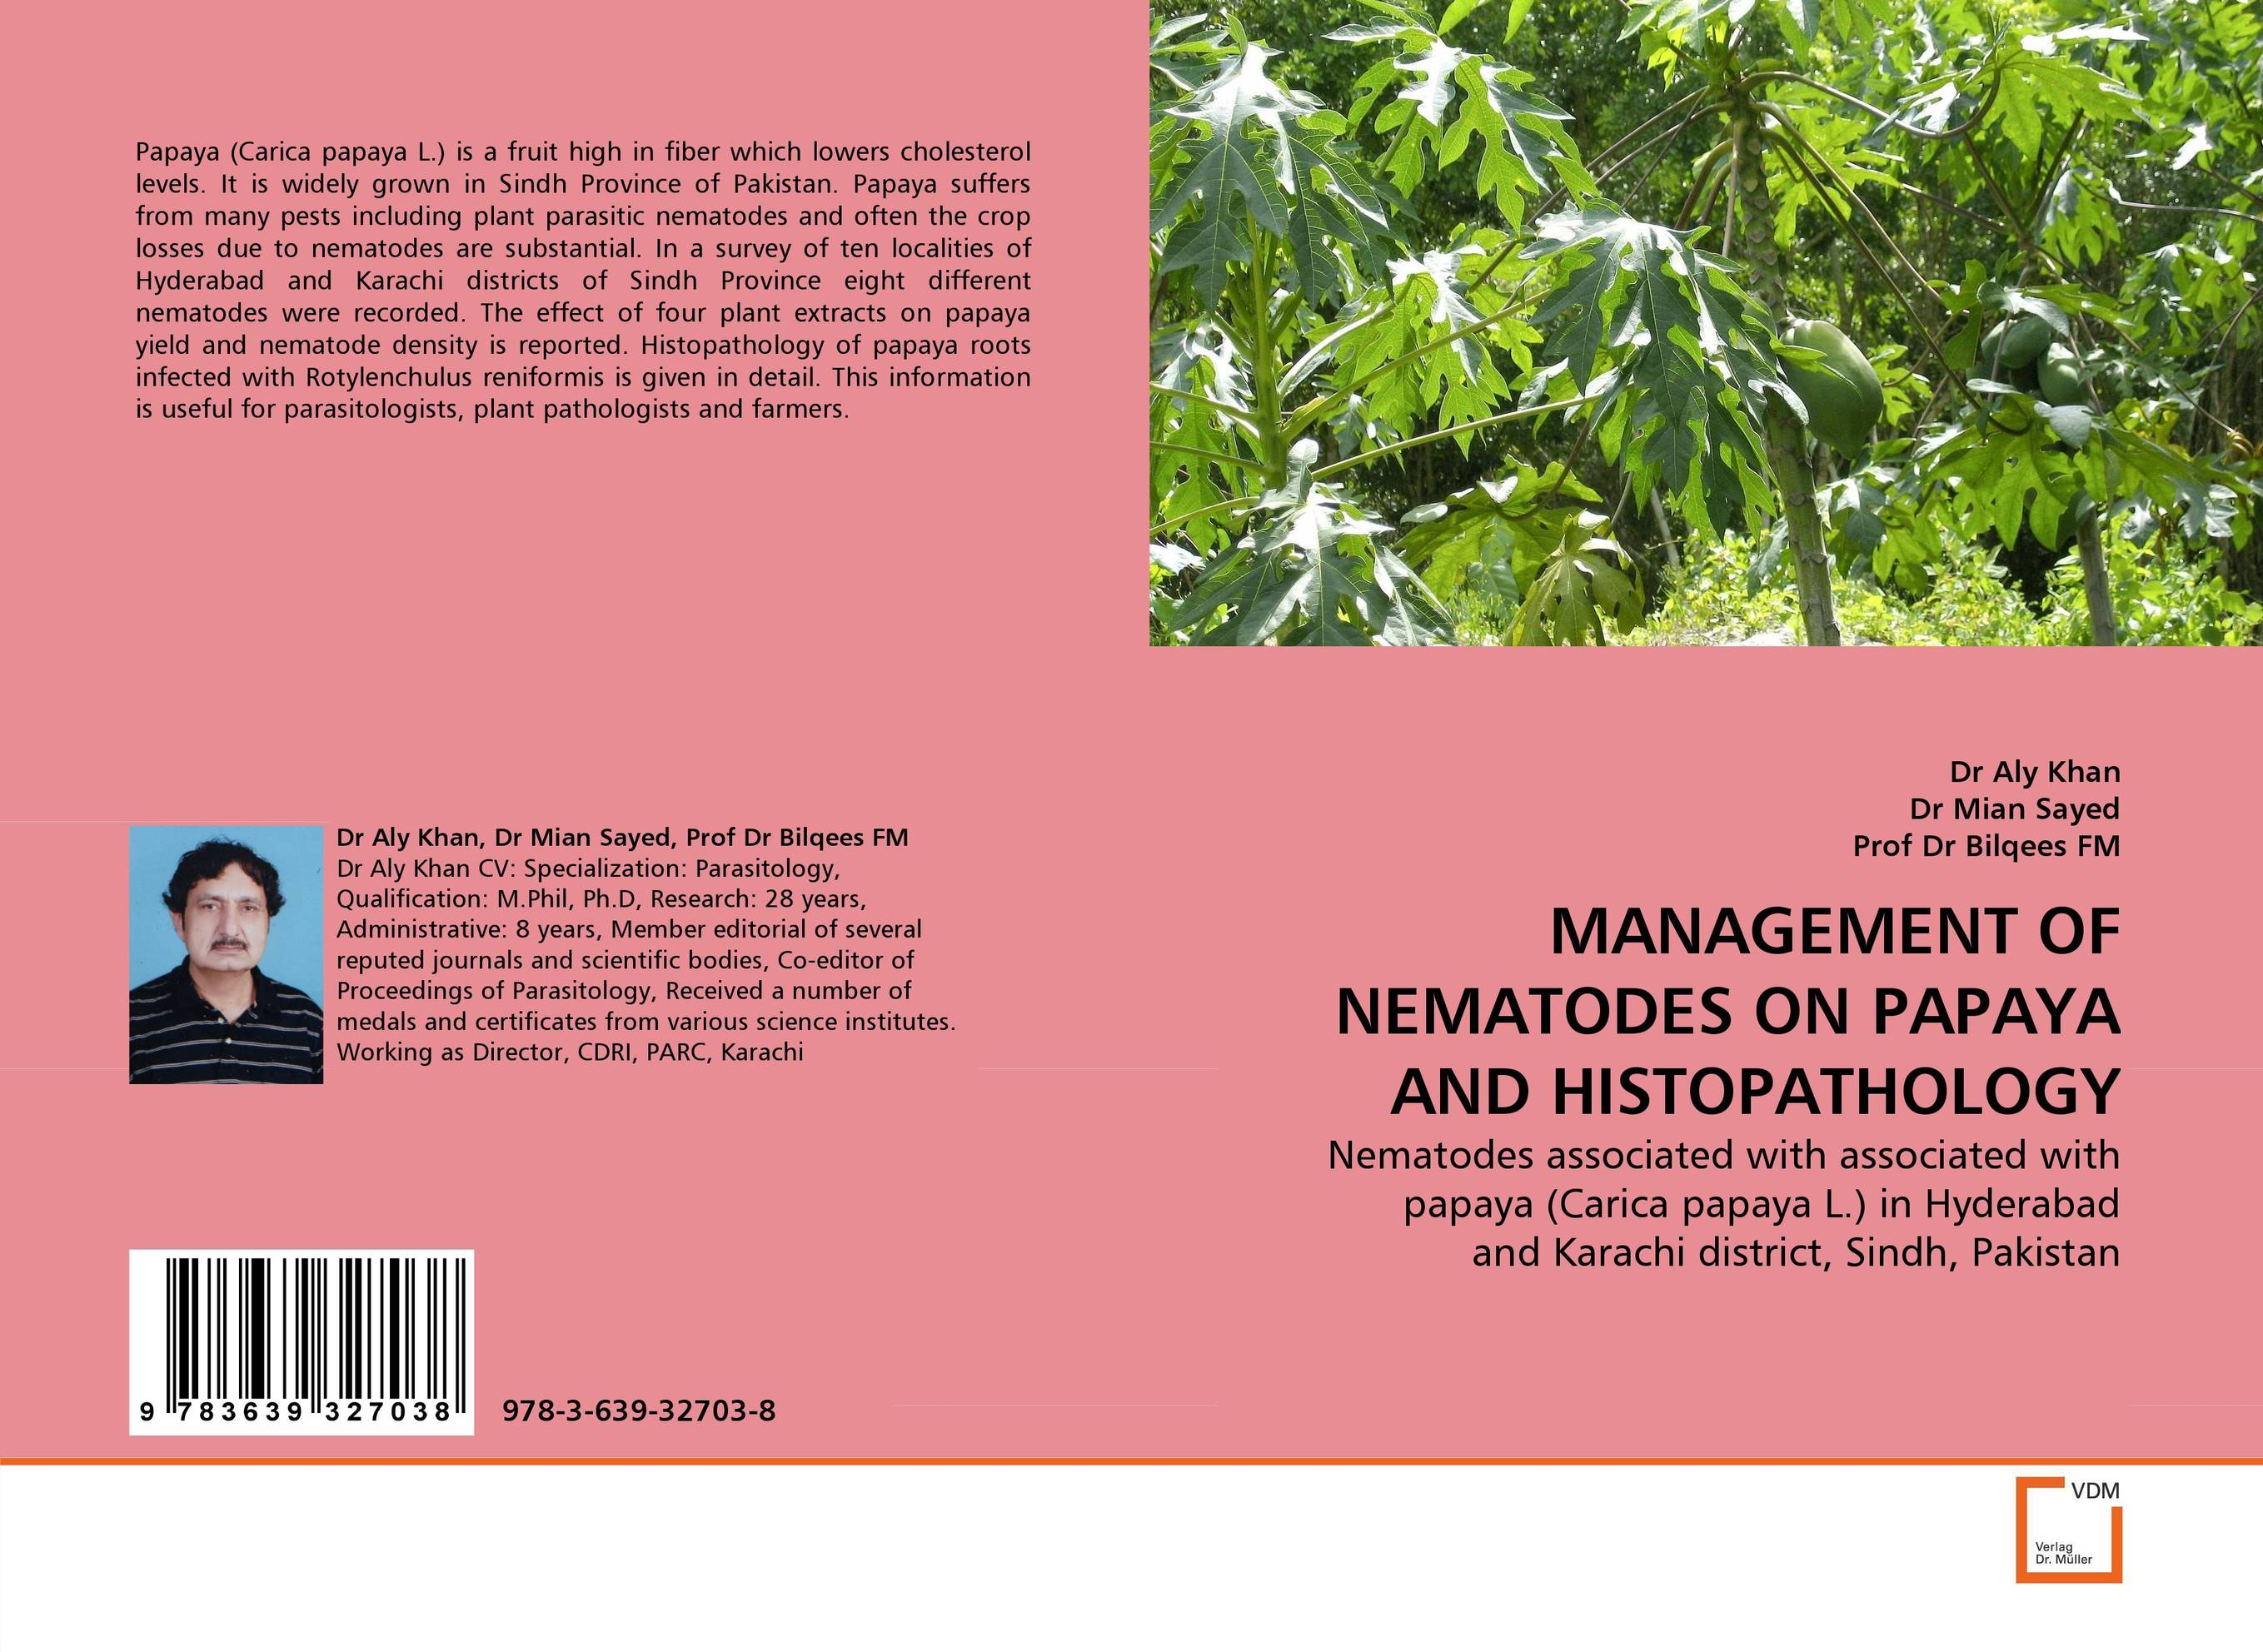 MANAGEMENT OF NEMATODES ON PAPAYA AND HISTOPATHOLOGY nematodes of vegetable crops their control using plant extracts